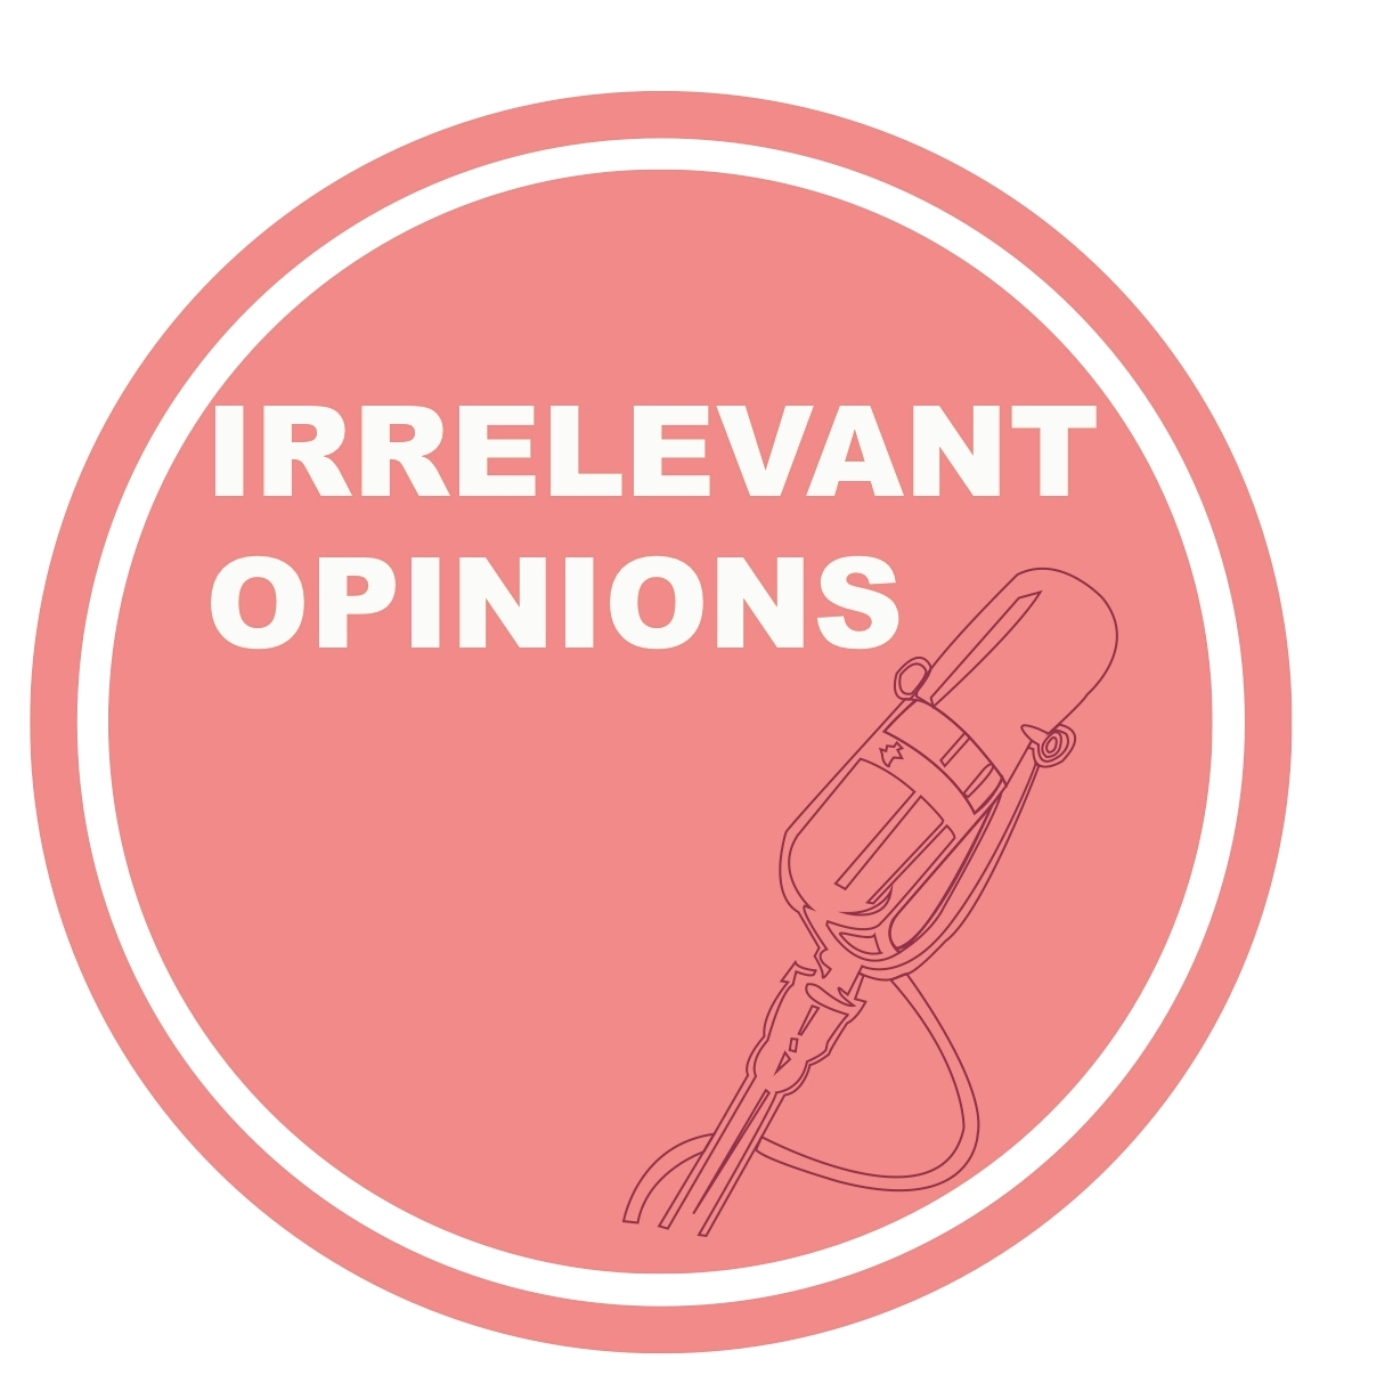 Irrelevant Opinions - Irrelevant Opinions